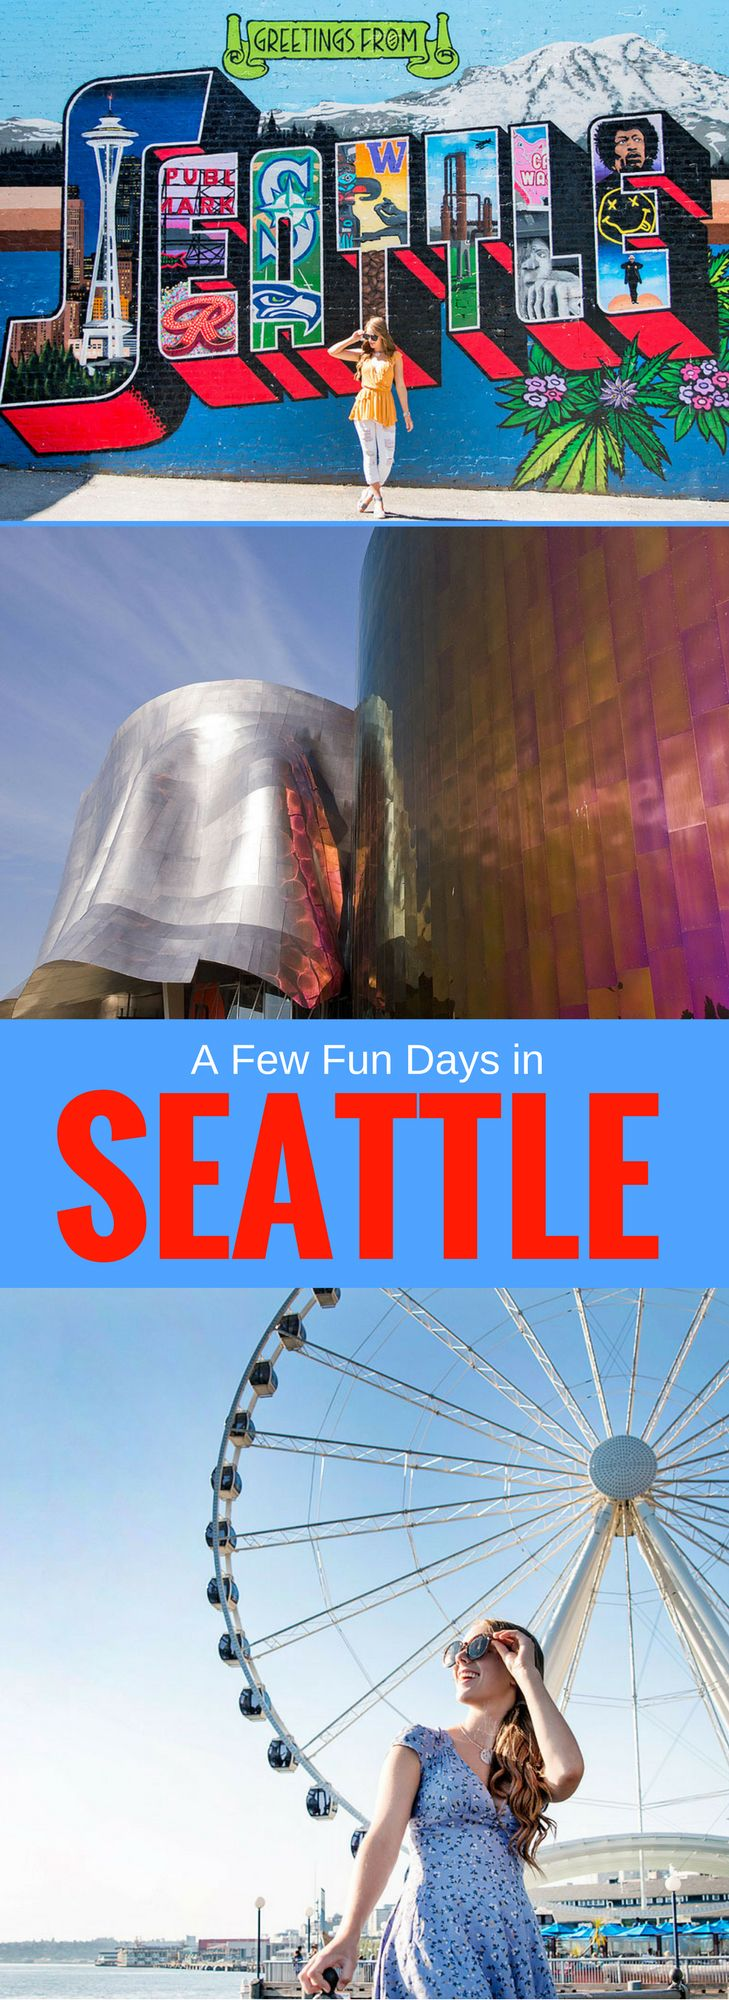 Bella Bucchiotti of xoxoBella is sharing the highlights of her vacation in Seattle, her stay at The Maxwell Hotel plus seeing the Space Needle, the Seattle Aquarium, Pike Place Market, Agrosy Harbor Tours, The Great Wheel, the EMP Museum, and Chihuly Garden and Glass.